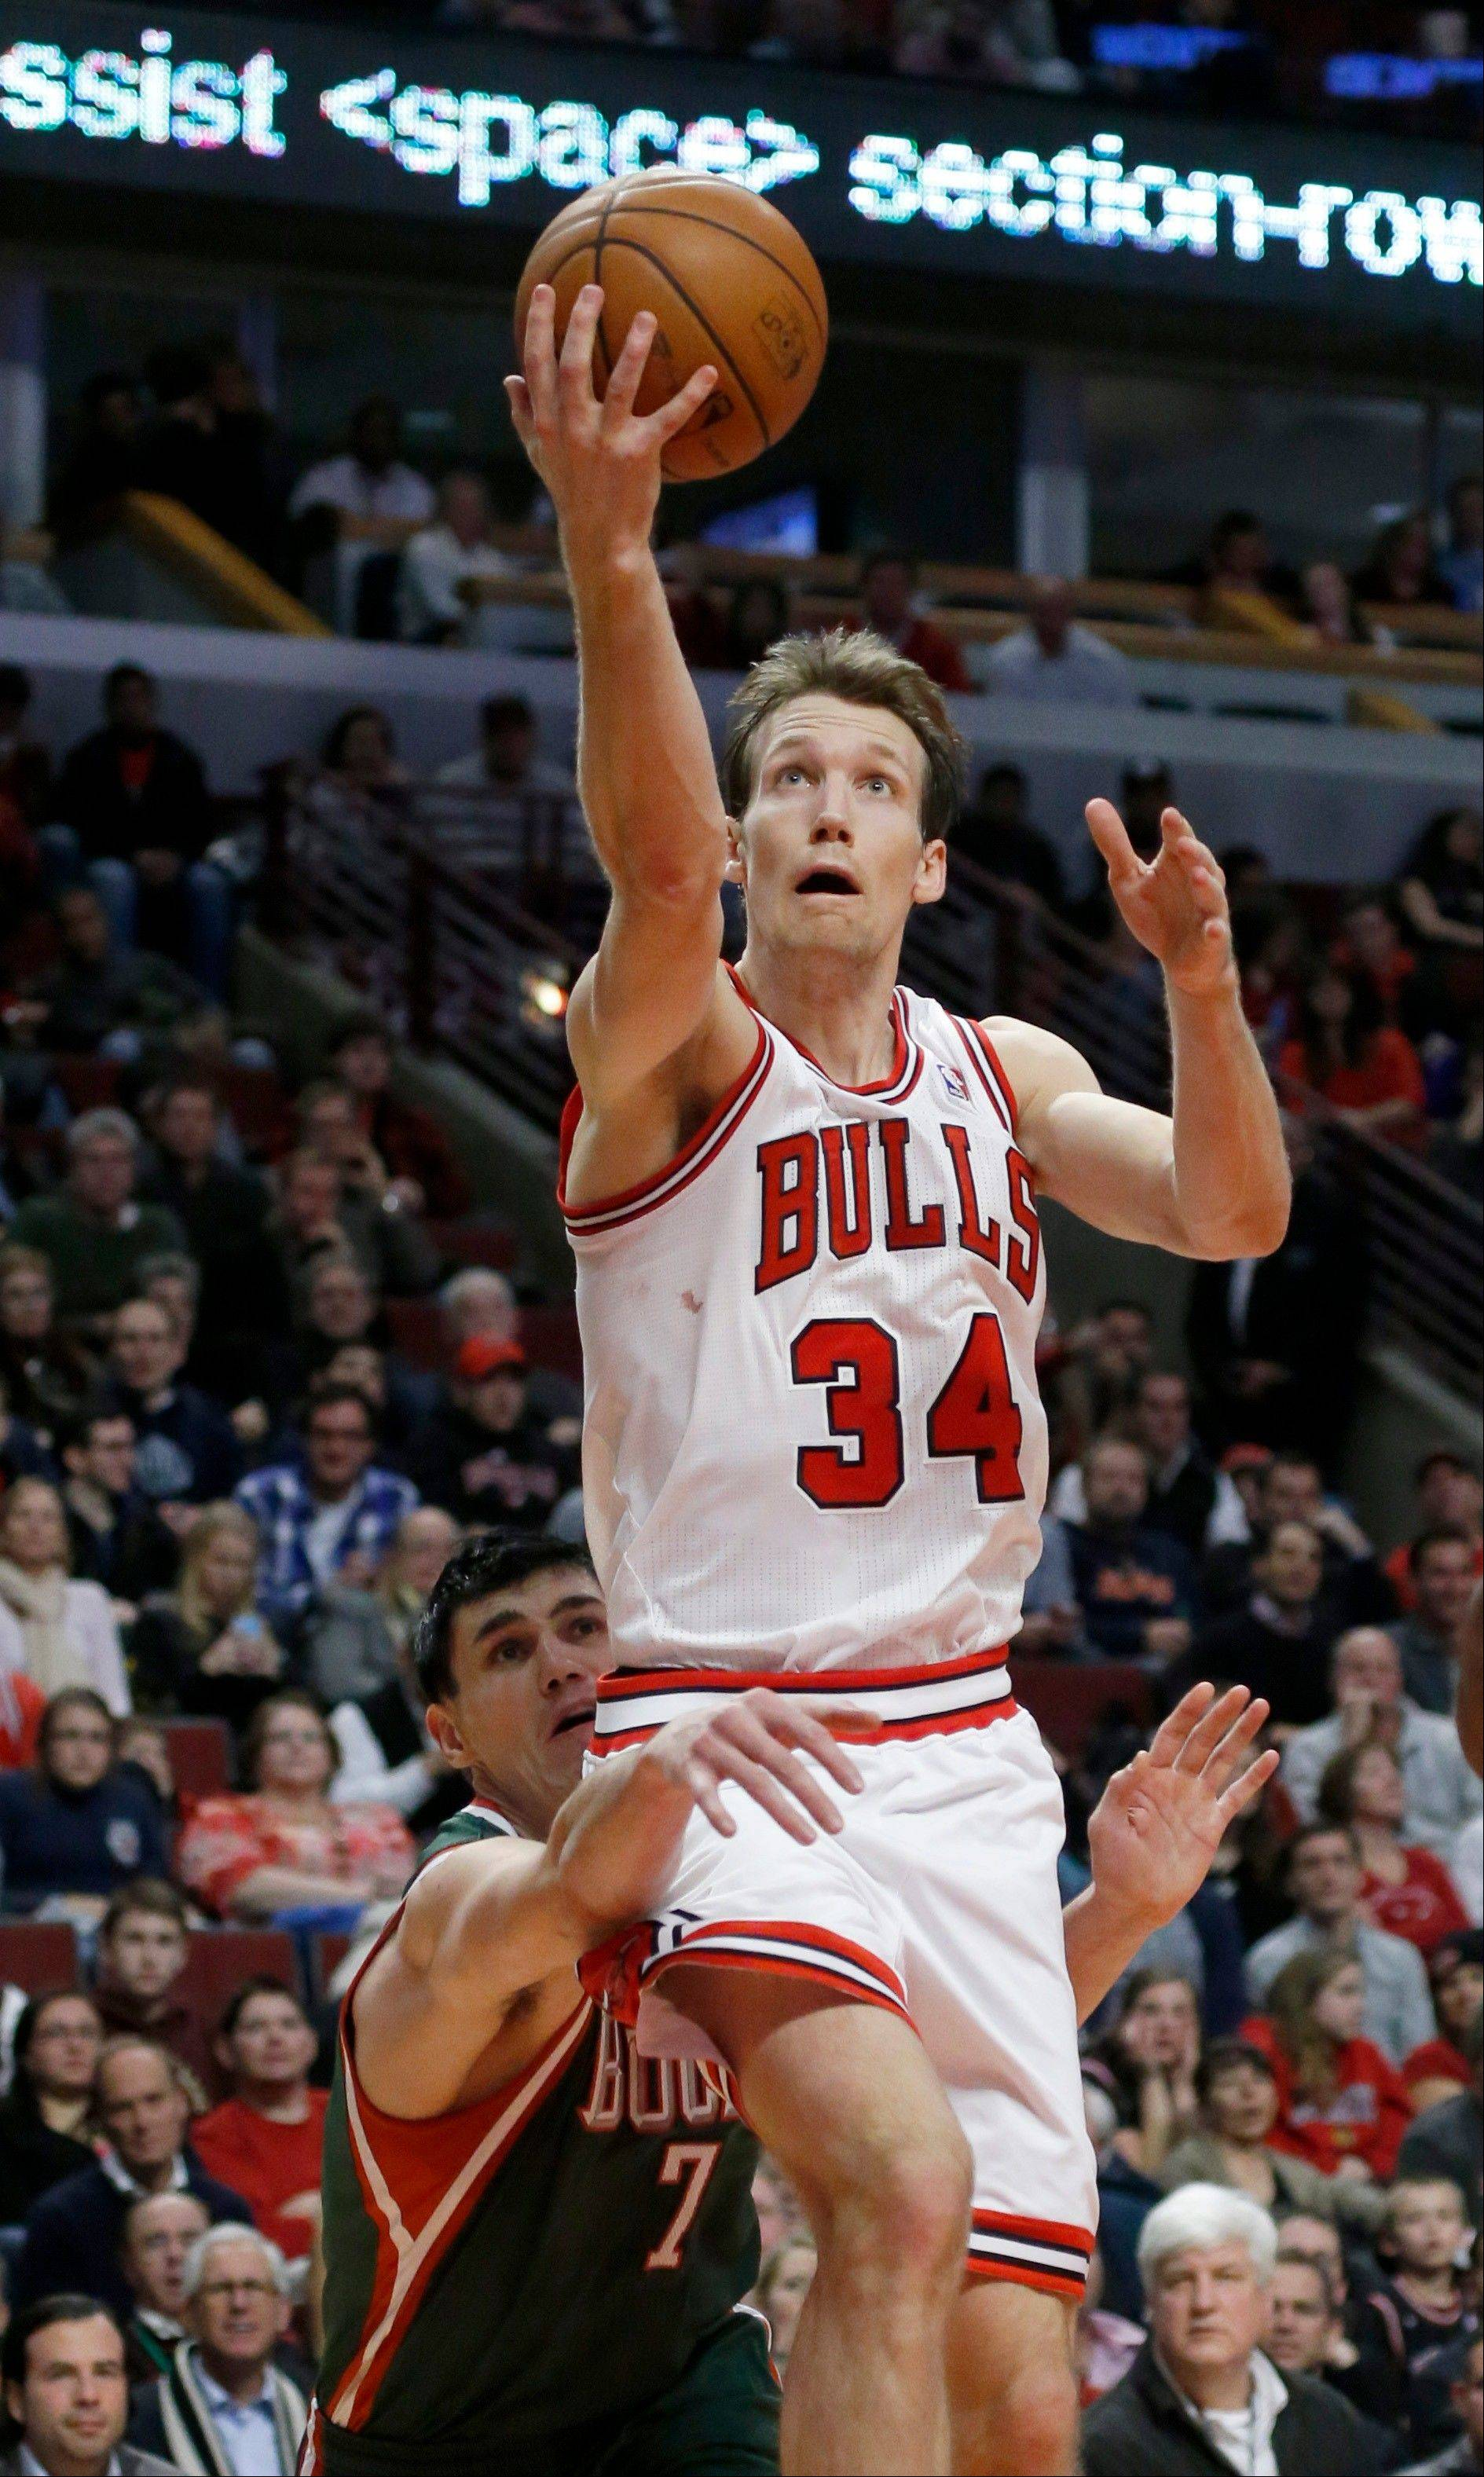 The Bulls' Mike Dunleavy drives to a basket on his way to 24 points in Tuesday night's loss to the Bucks.